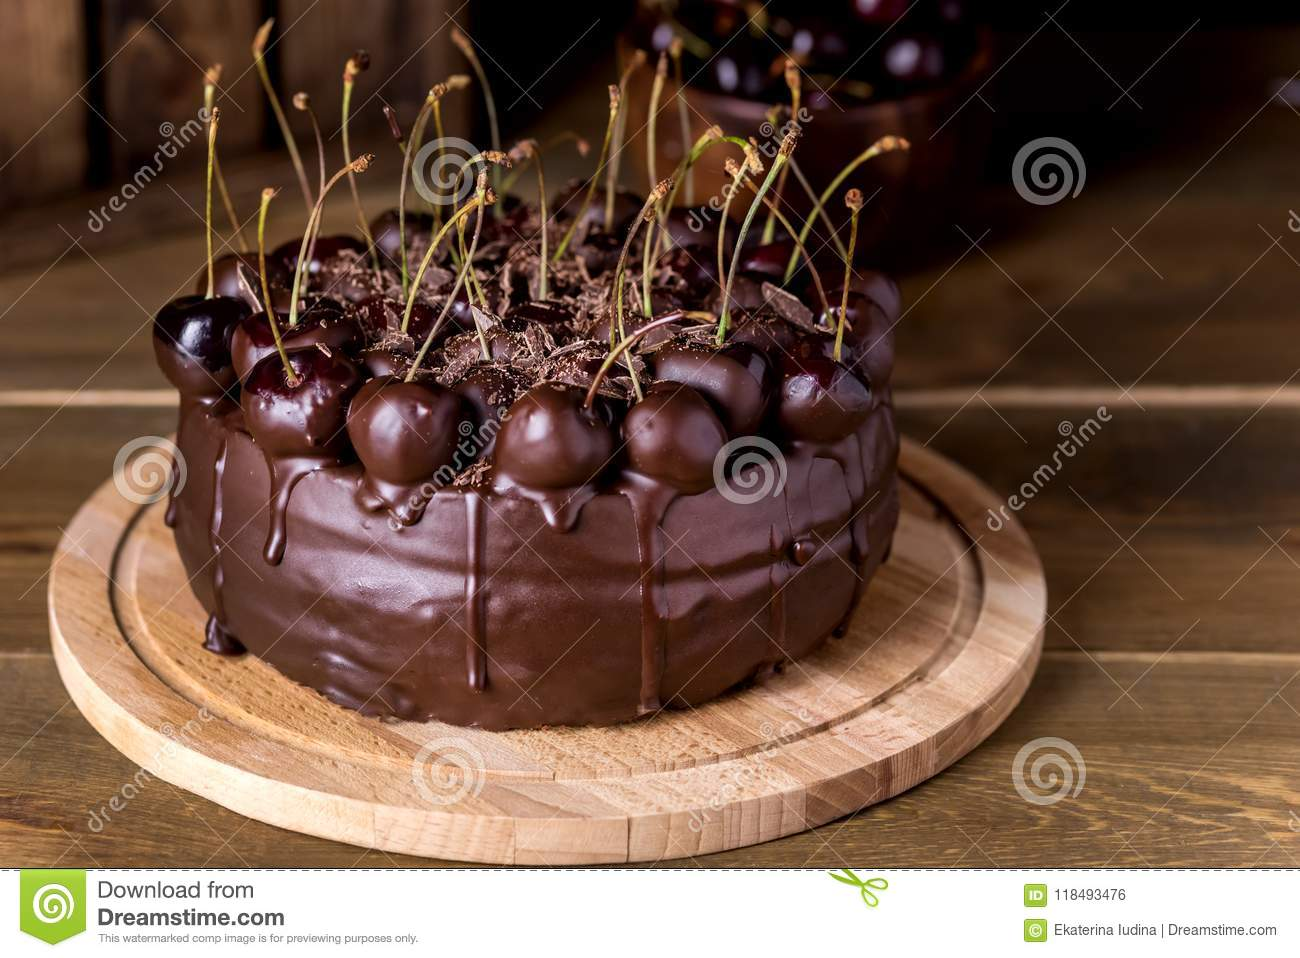 Chocolate Cake Decorated With Cherries With Chocolate Horizontal